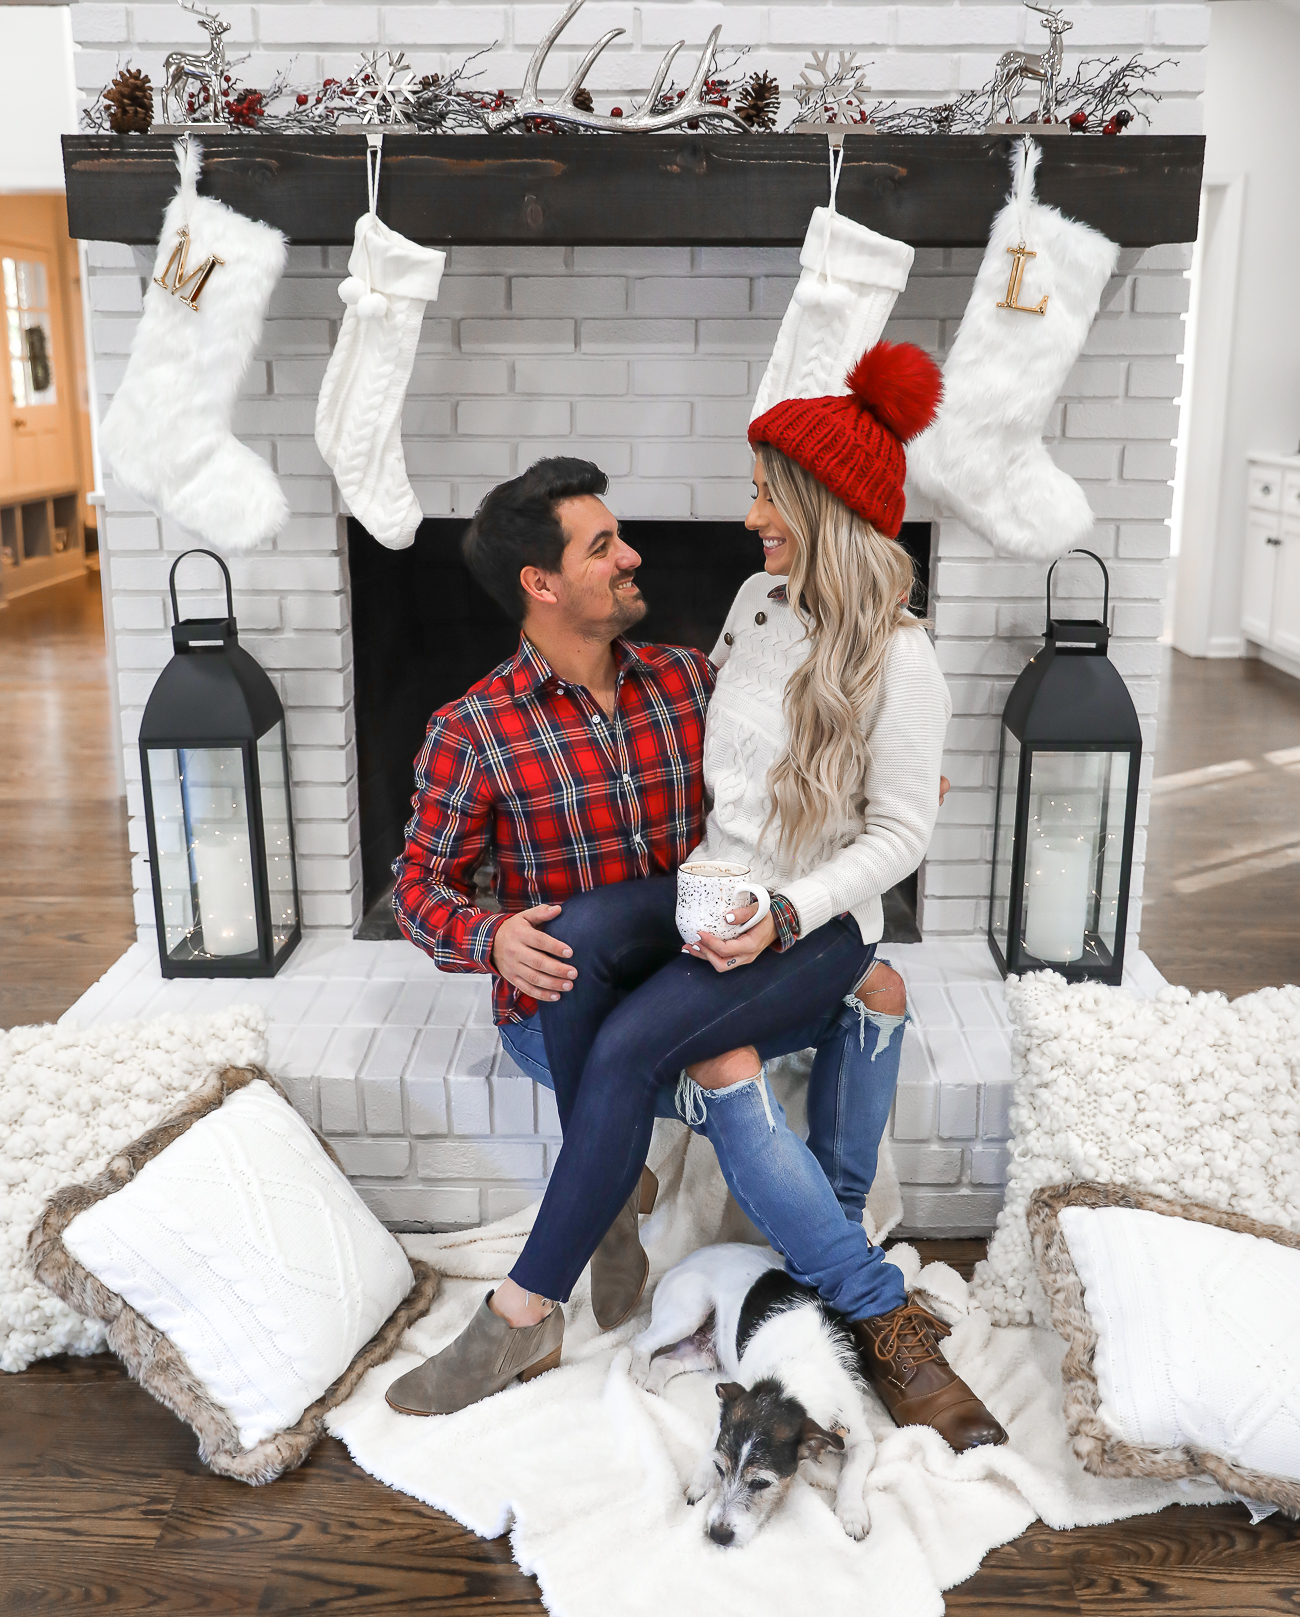 Nordstrom Mens holiday outfit idea couples christmas family pictures Red plaid shirt white brick fireplace Laura Beverlin-3